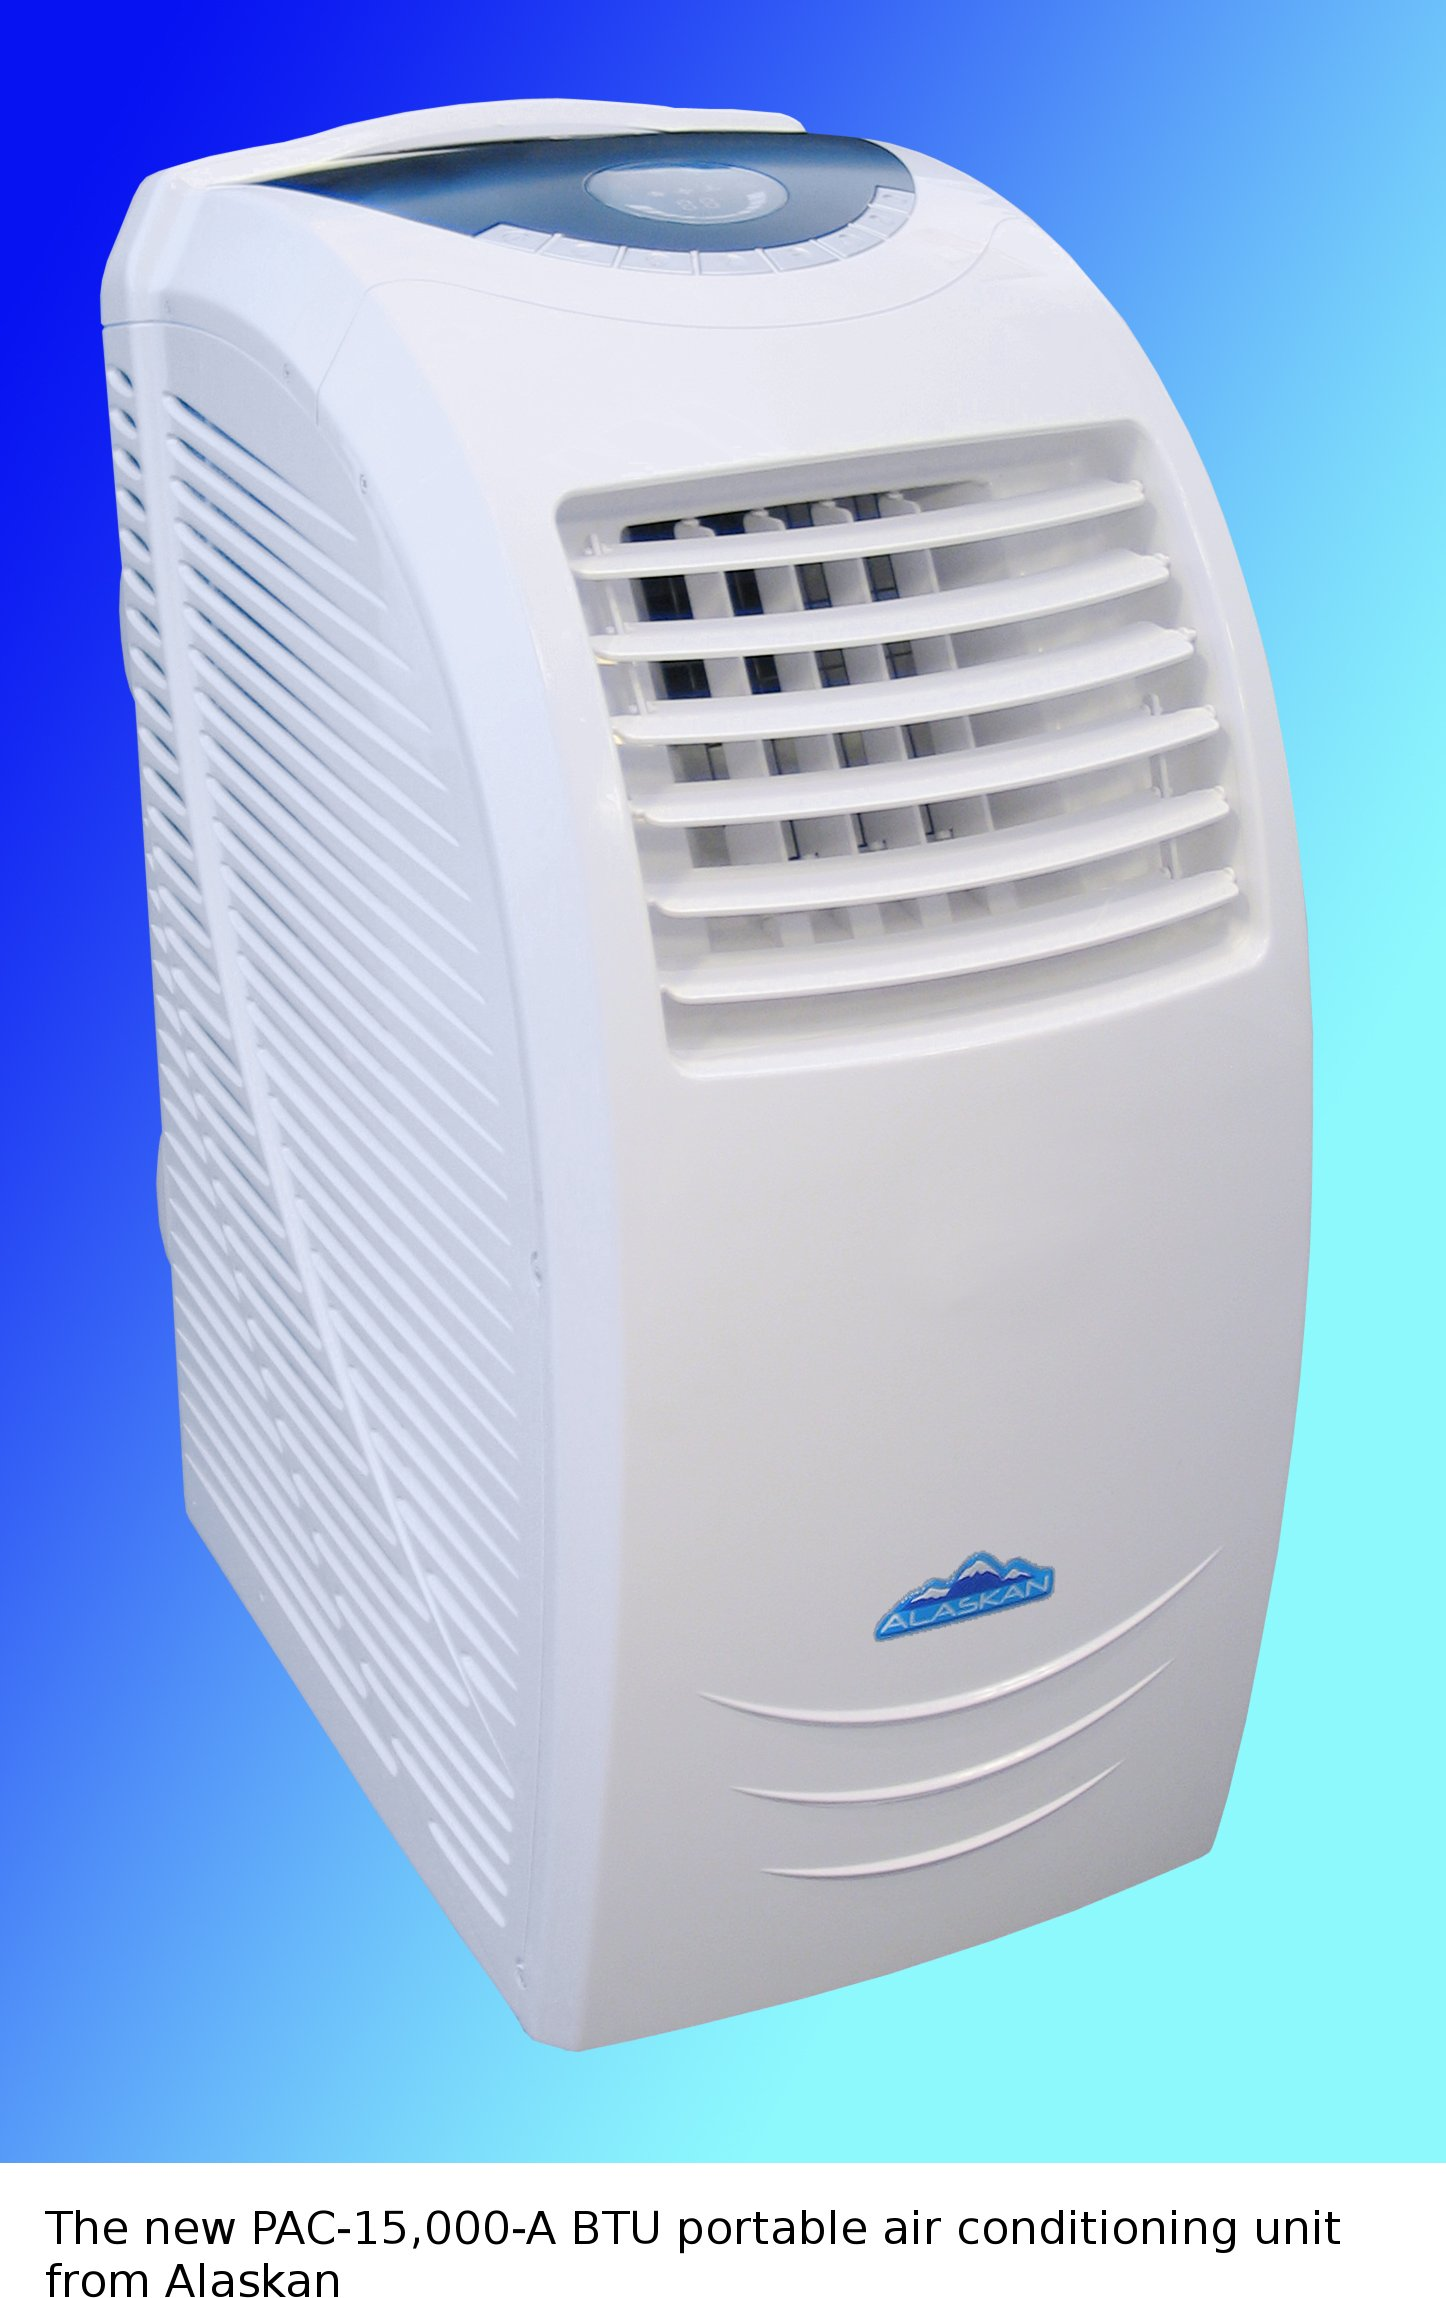 Alaskan Launches Its Powerful 15 000 Btu Portable Air Conditioning Unit For Residential And Small Medium Sized Offices